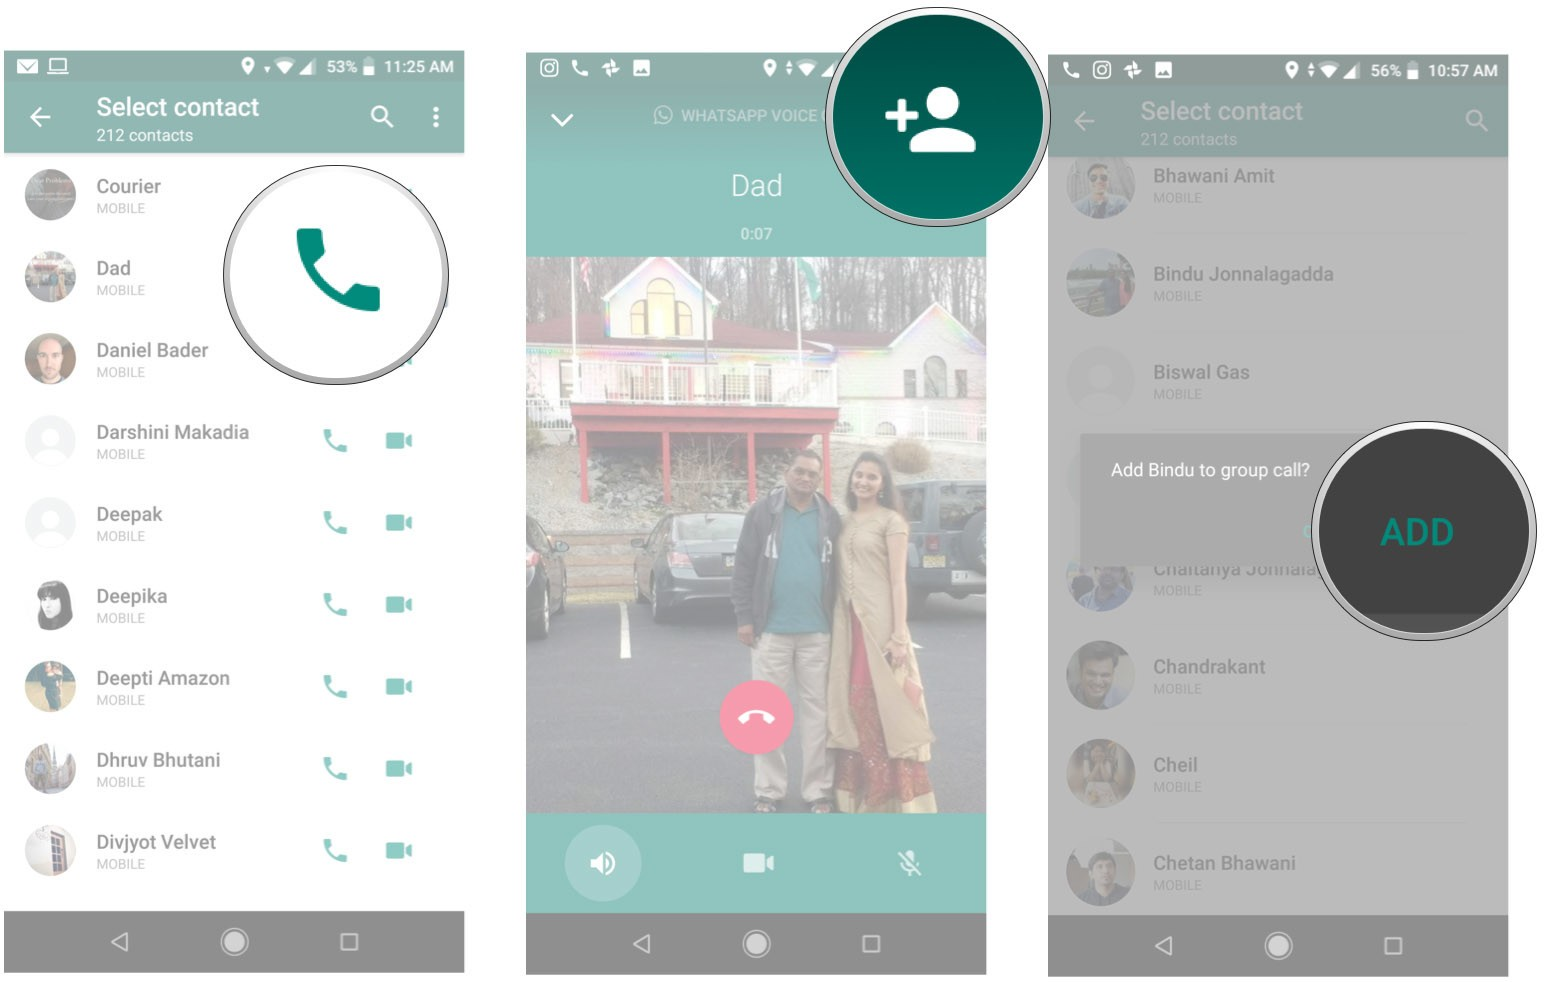 WhatsApp used the plus button to add members to a group call.